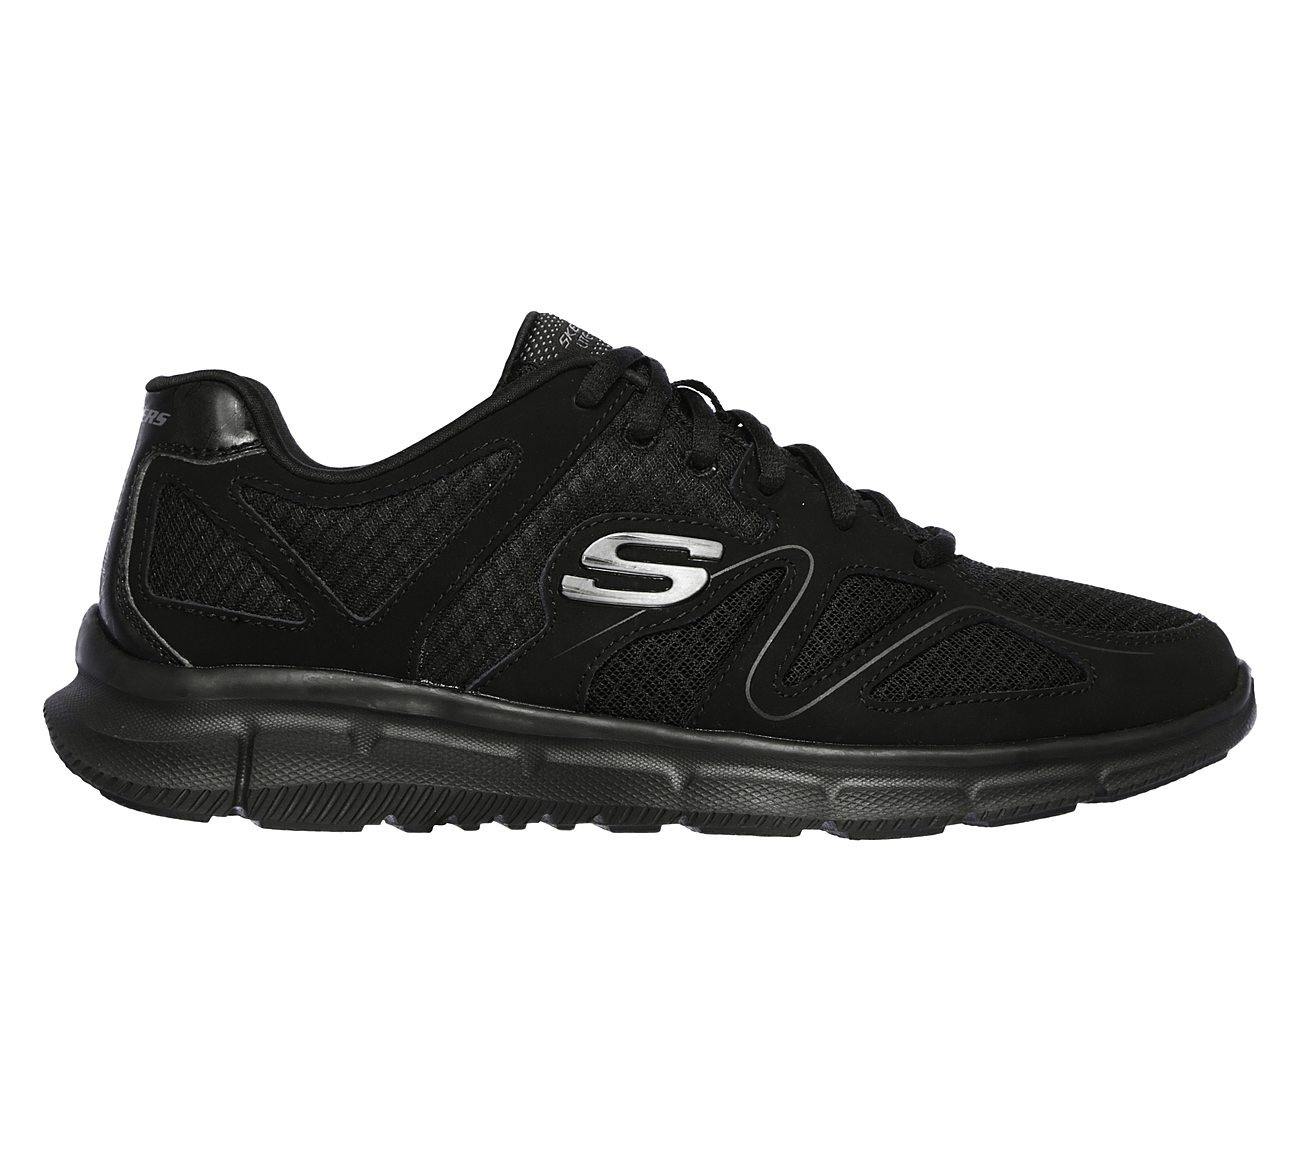 Skechers Men's Satisfaction Flash Point Trainer,Charcoal/Orange,US 7 M